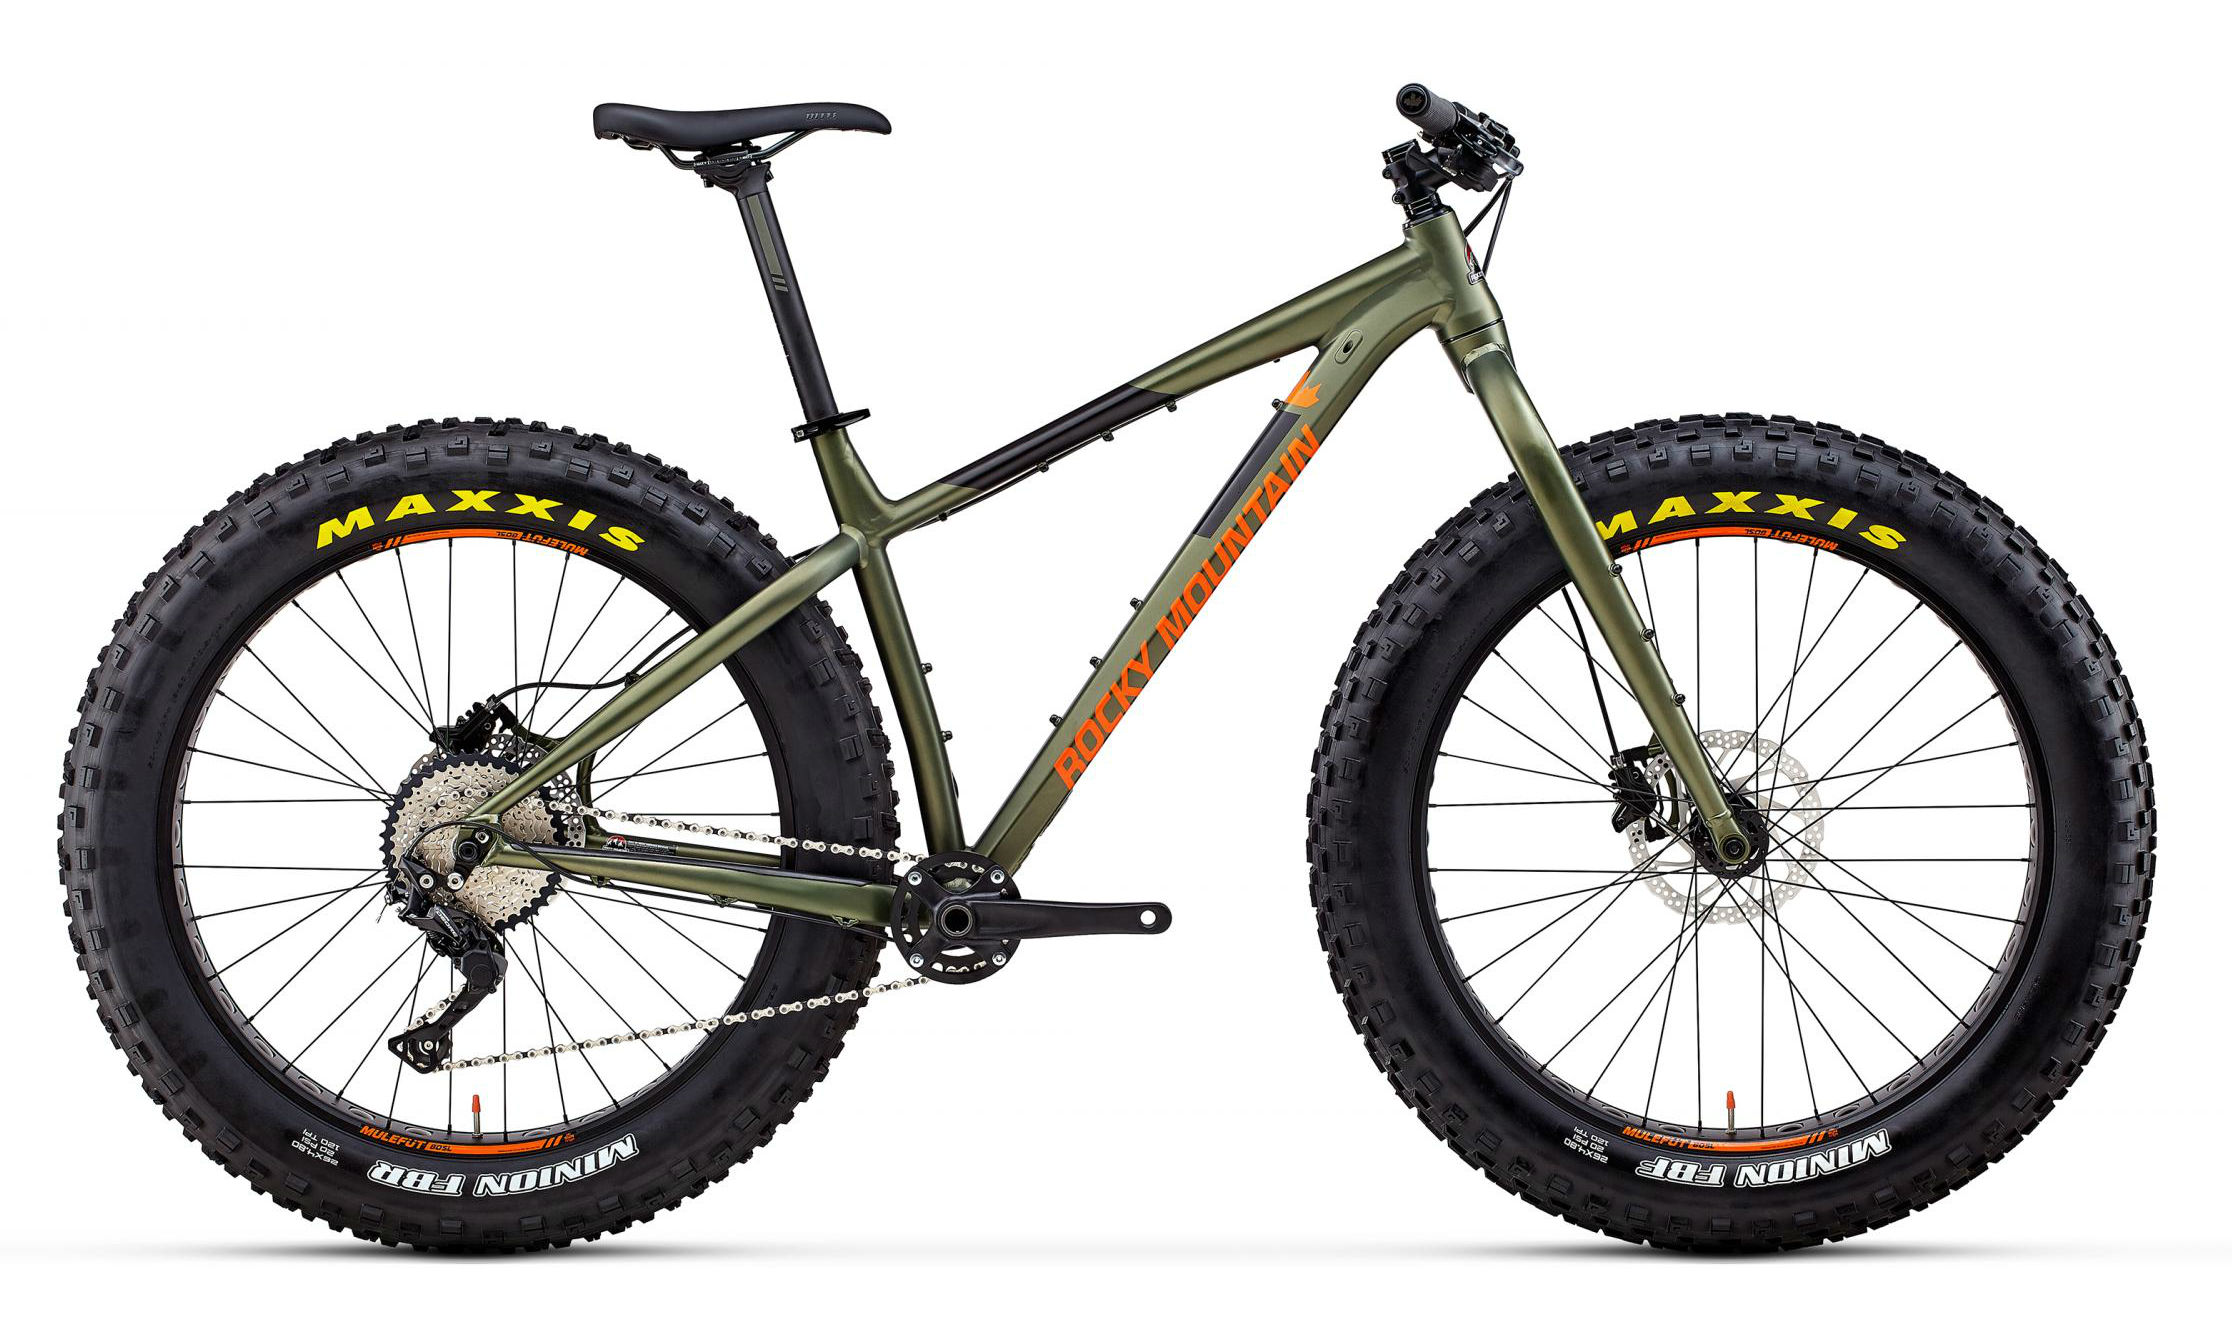 61ef0dcff71 With the introduction of the Blizzard, Rocky Mountain focused on bringing  trail bike geometry and handling to the fat bike market, and if the high  praise ...